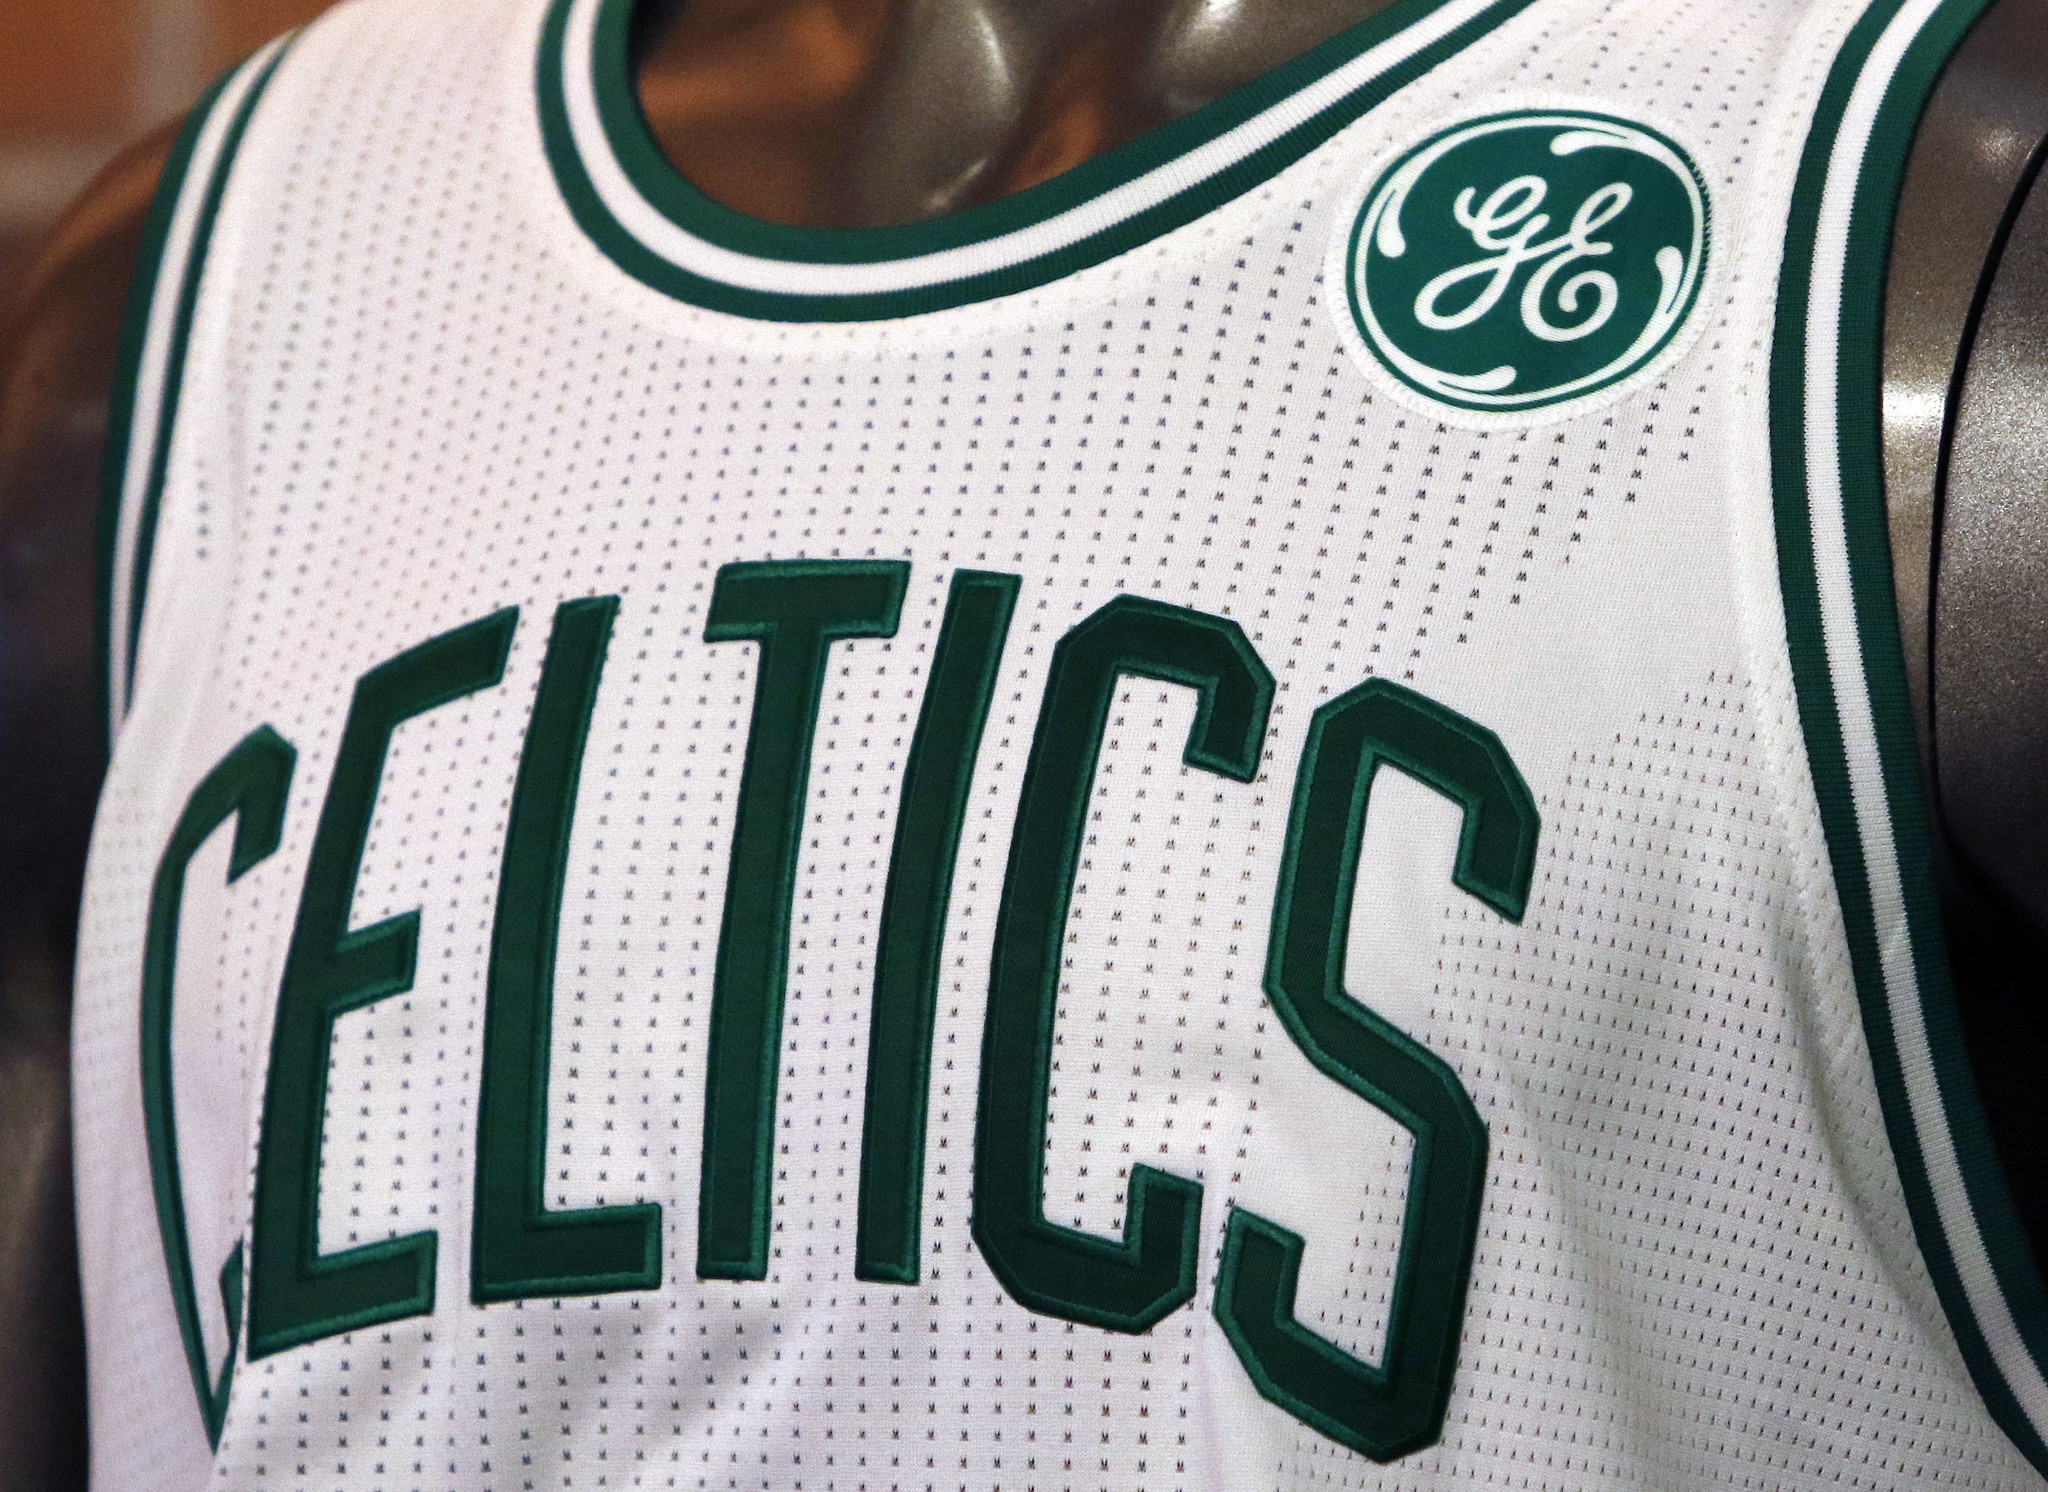 Celtics reach deal to put General Electric logo on uniform ...